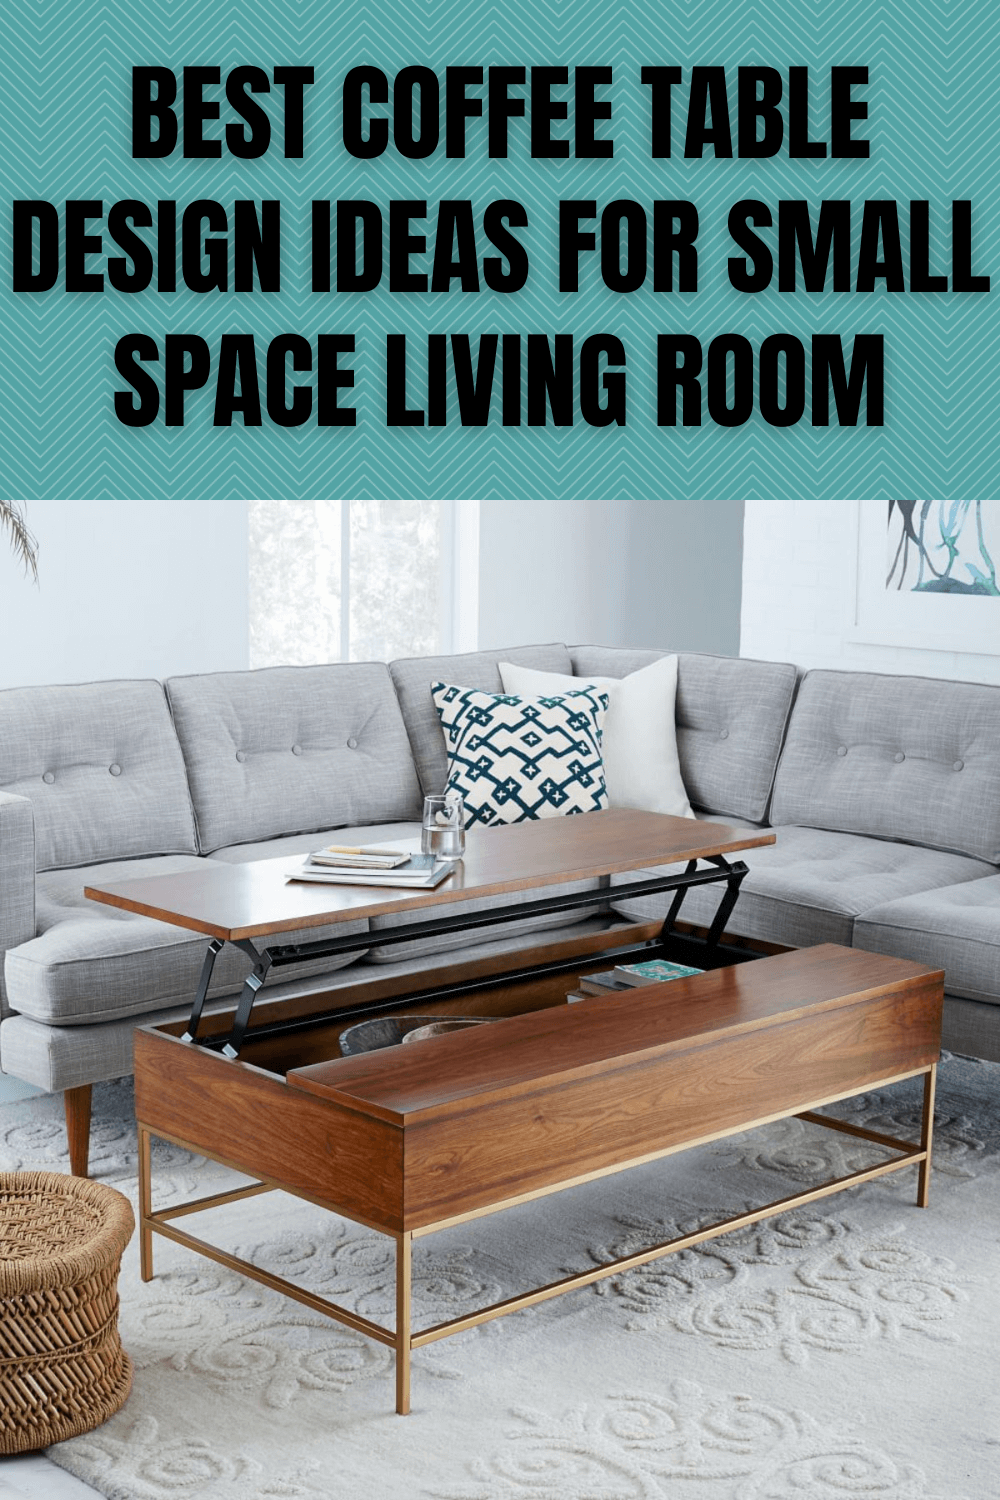 BEST COFFEE TABLE DESIGN IDEAS FOR SMALL SPACE LIVING ROOM